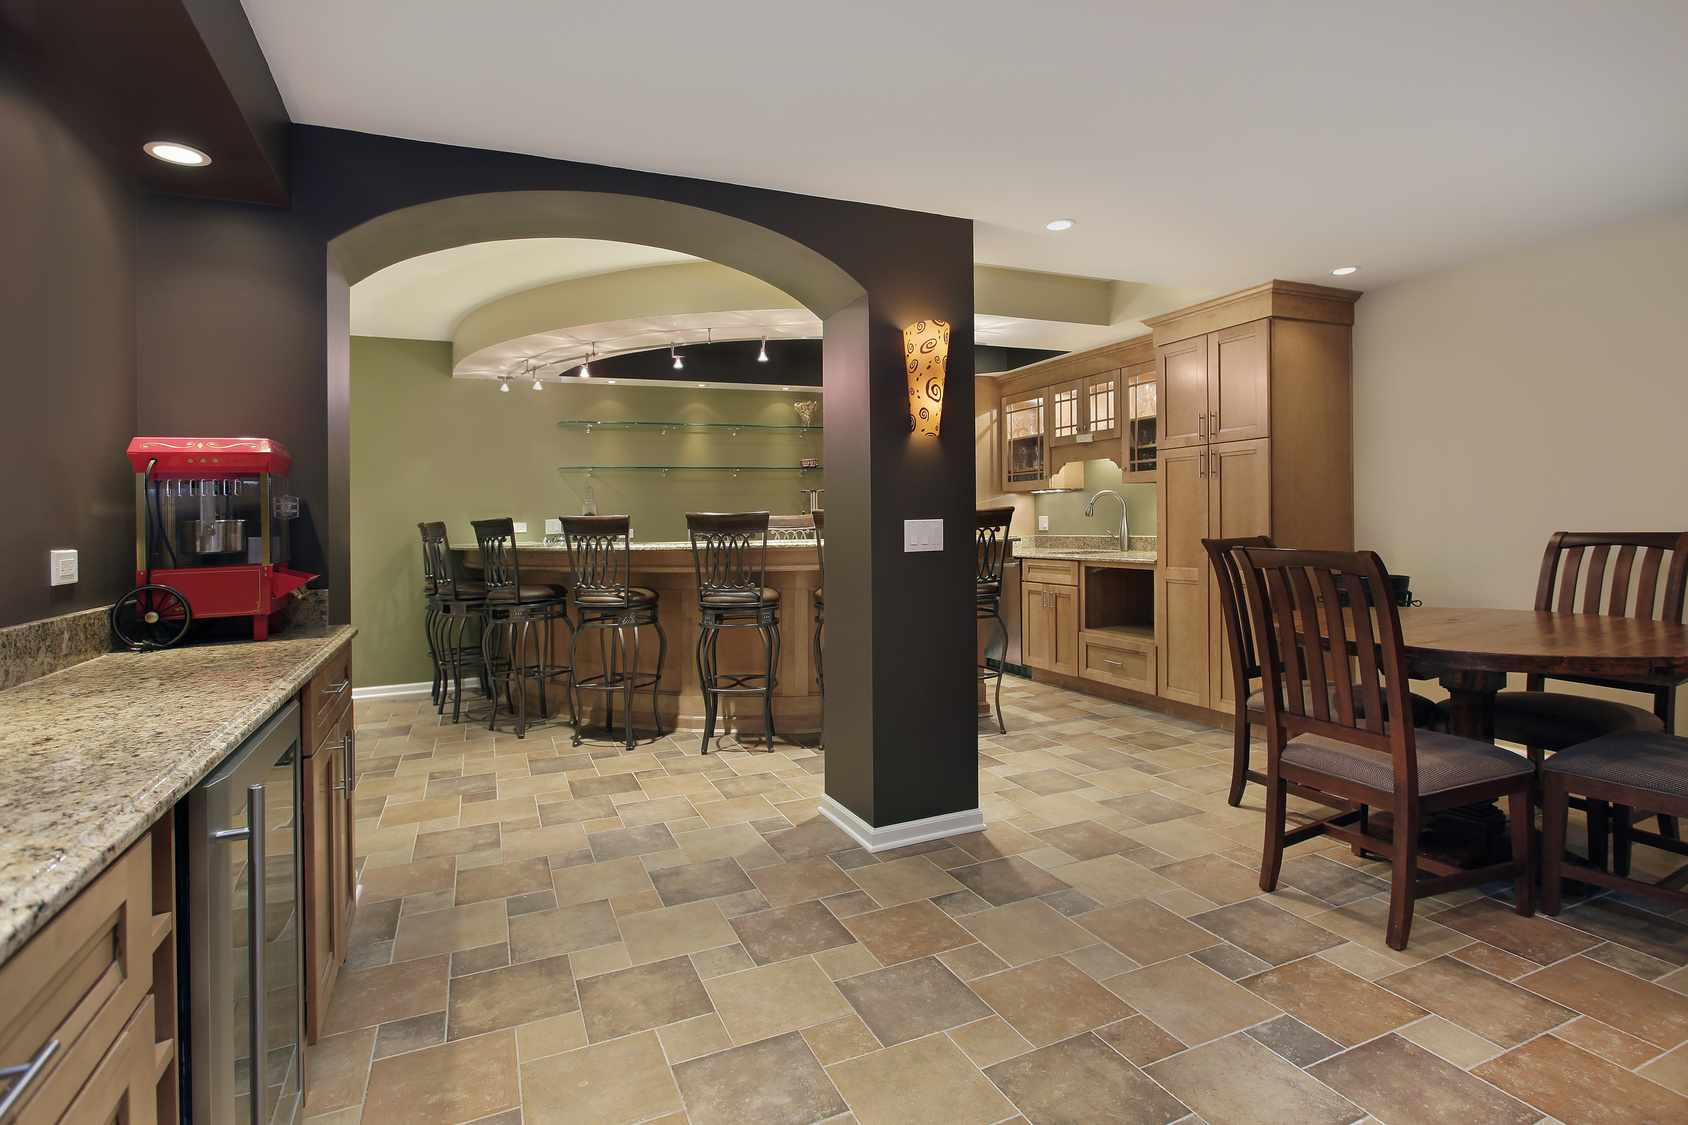 Basement Remodel in Plainfield, IL - JW Construction & Design Services